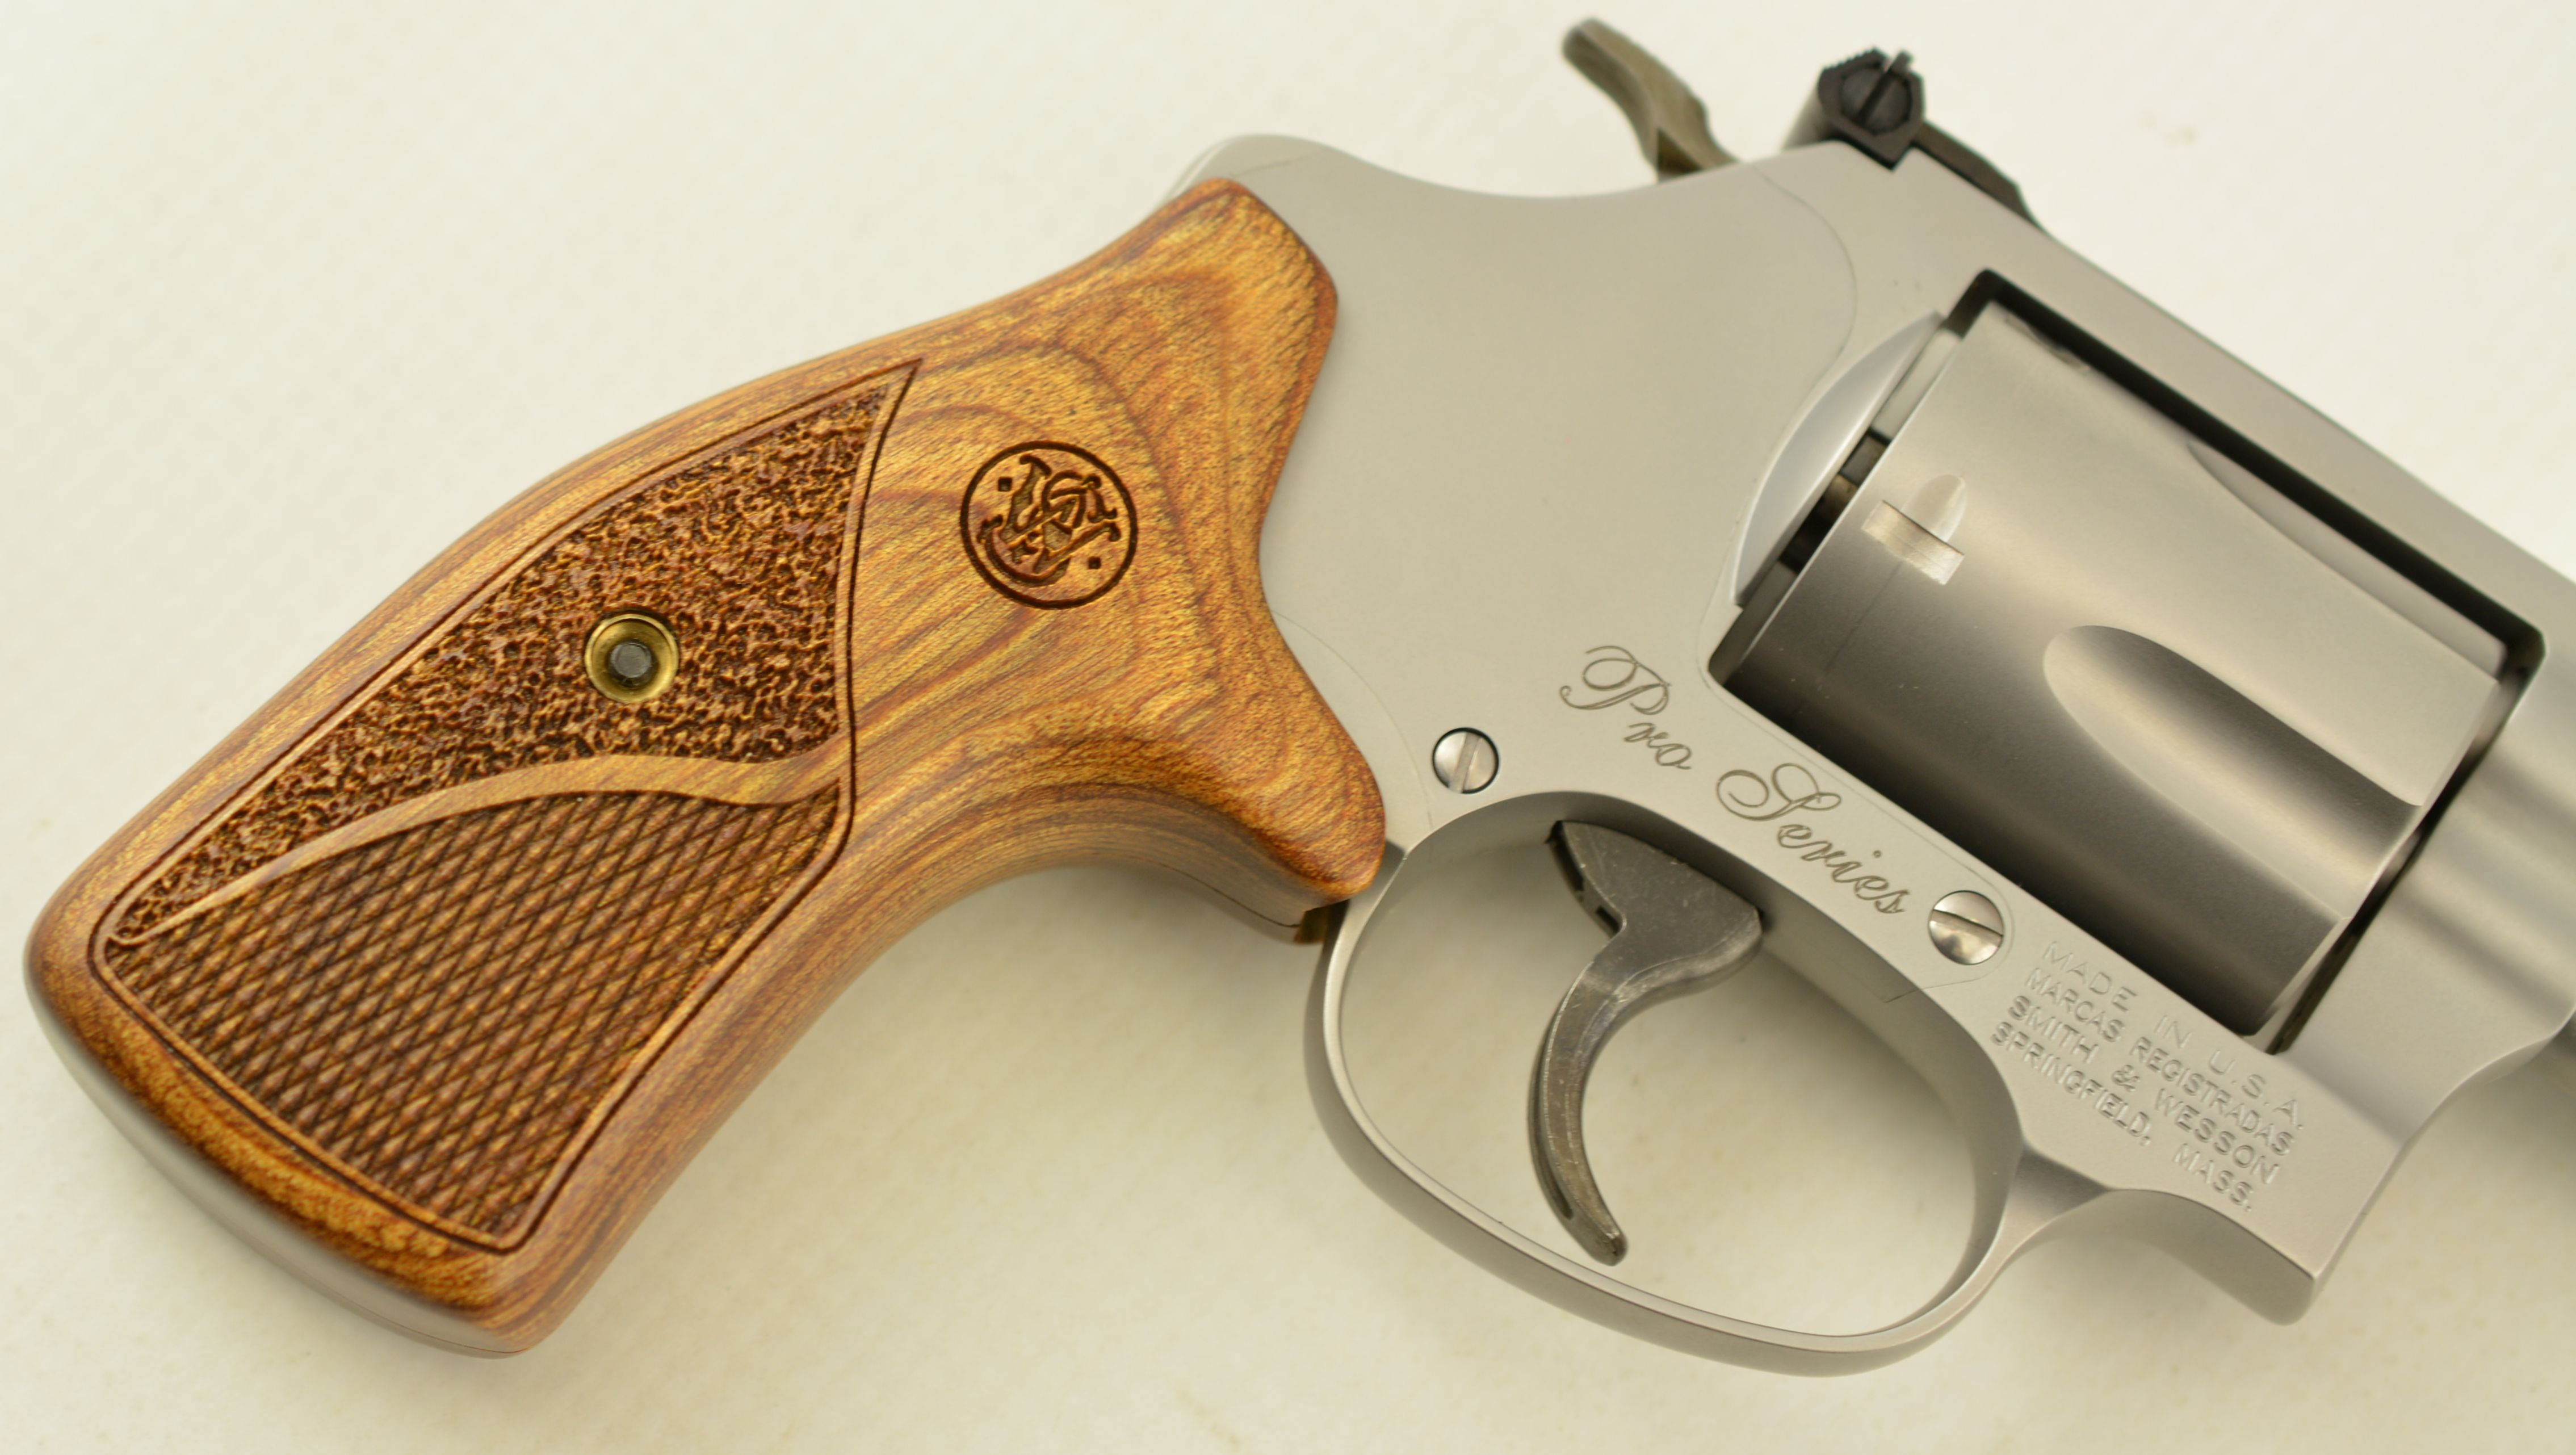 dating smith and wesson model 60 The smith & wesson model 60 provides plenty of answers smith & wesson introduced the model 60 in 1965 it was a year marked.